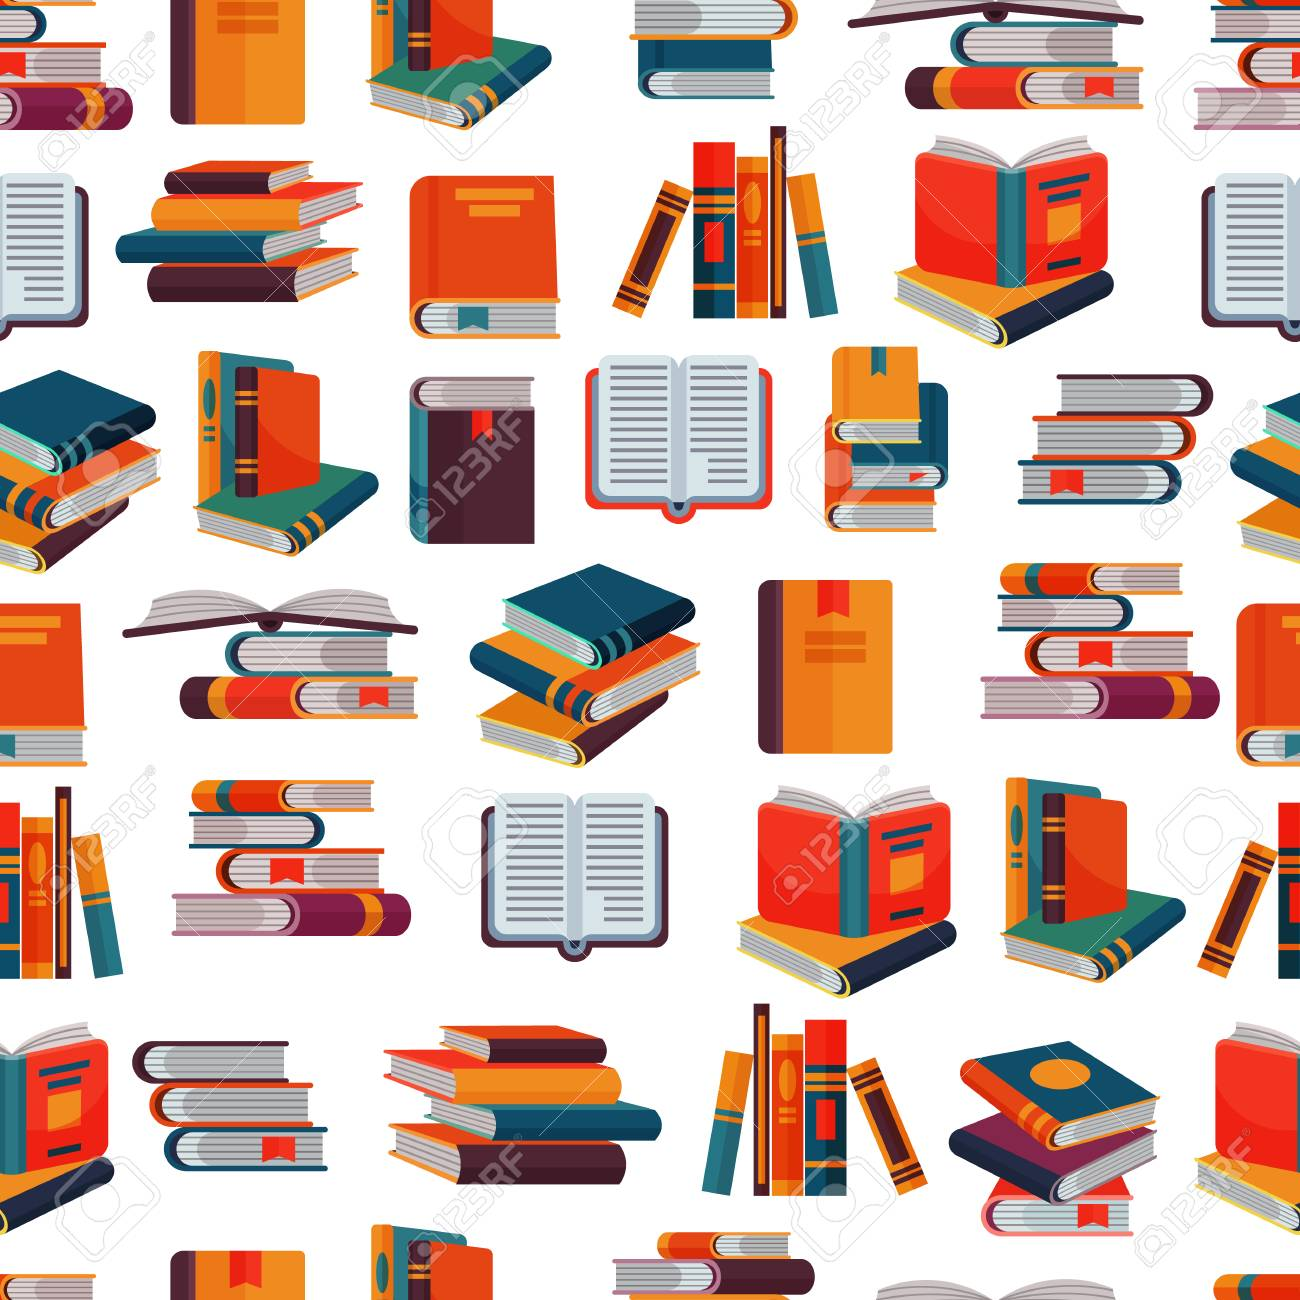 Books vector stack of textbooks and notebooks on bookshelves reading literature in library or bookstore bookish cover illustration set isolated seamless pattern background - 97403095